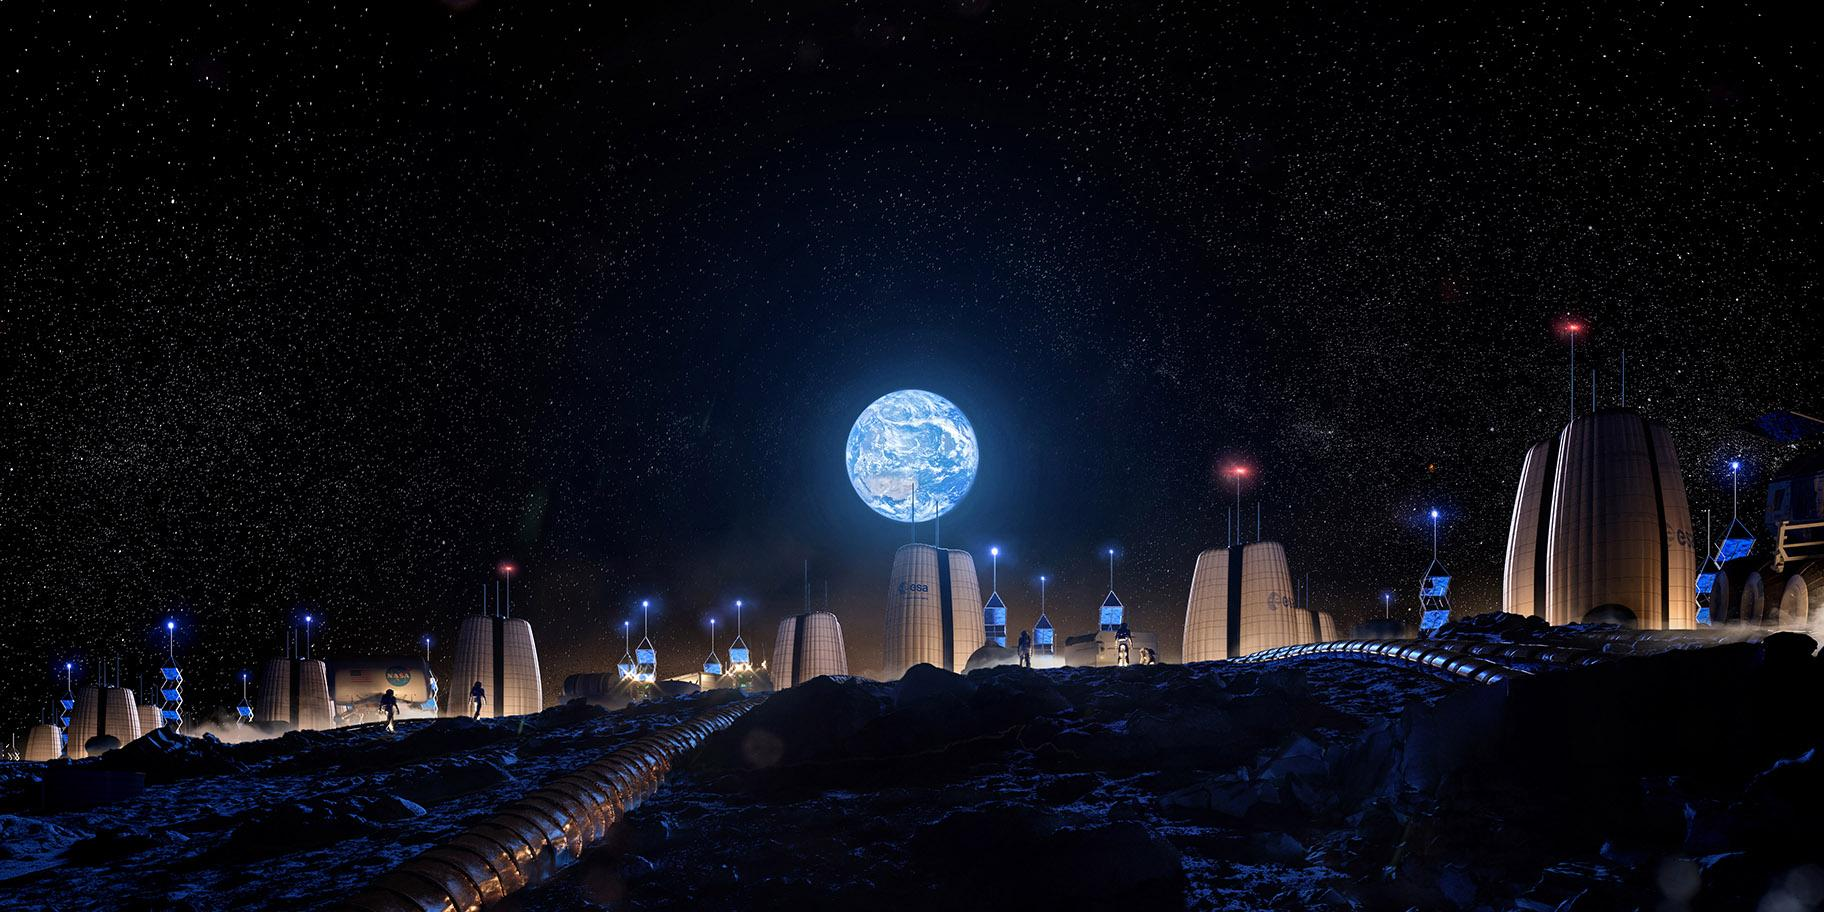 A vision of what a permanent human presence on the moon could look like. (Credit: SOM / Slashcube GmbH)  - Moon 20Village Earth 20View 20Final - Skidmore, Owings & Merrill Work with European Space Agency to Design 'Moon Village'   Chicago News